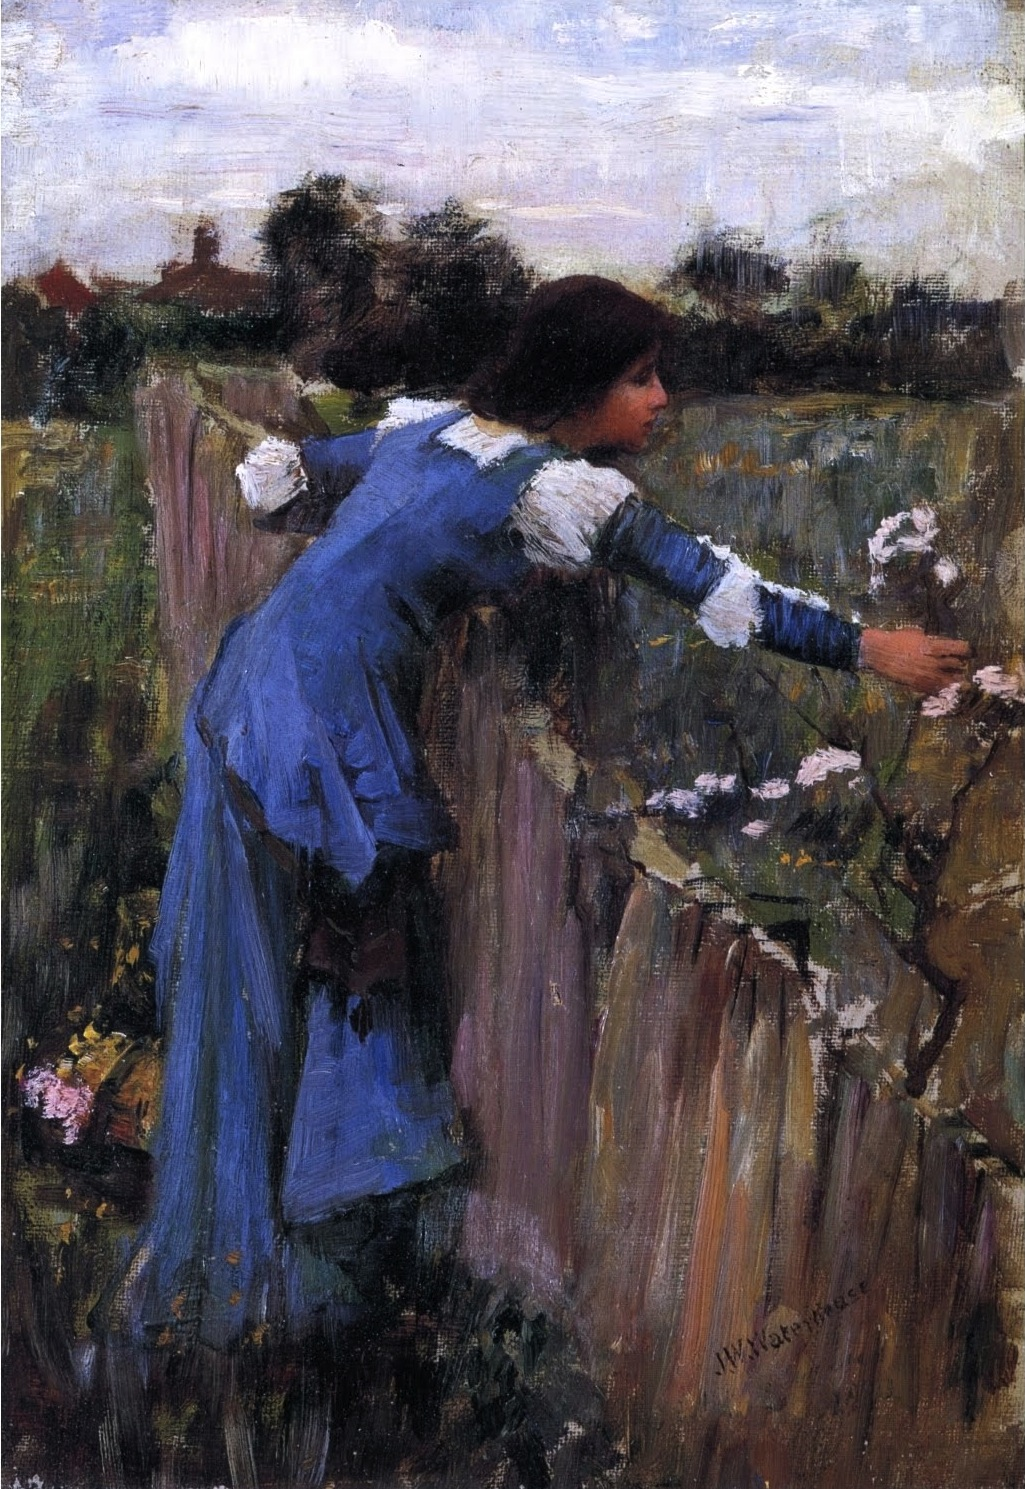 John William Waterhouse, The Flowerpicker